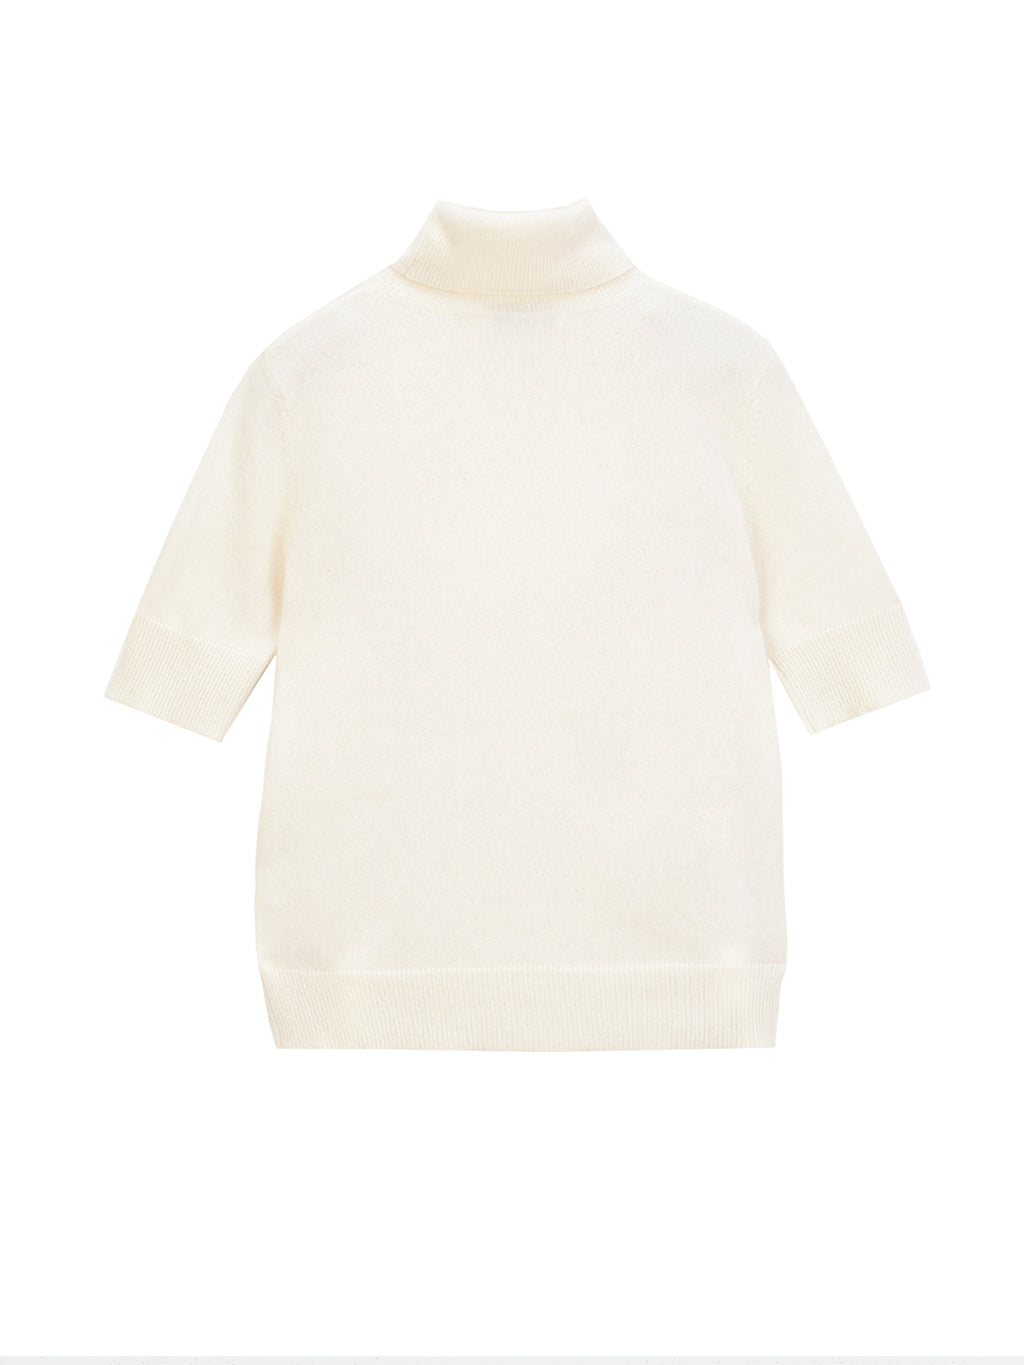 Turtleneck Shortsleeve_Vintage White